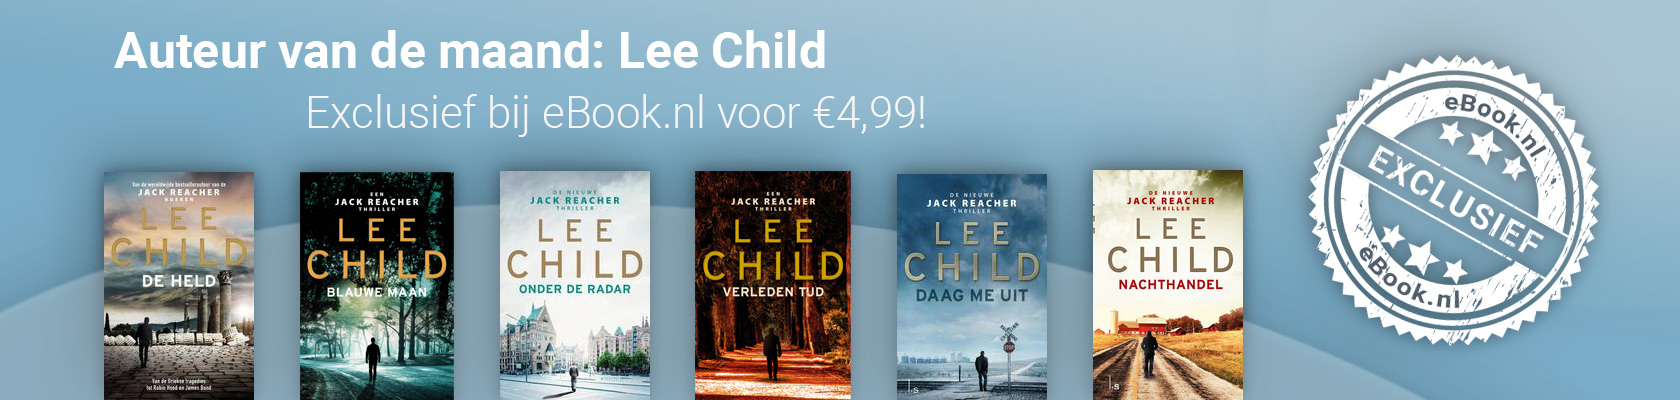 Auteur van de maand: Lee Child